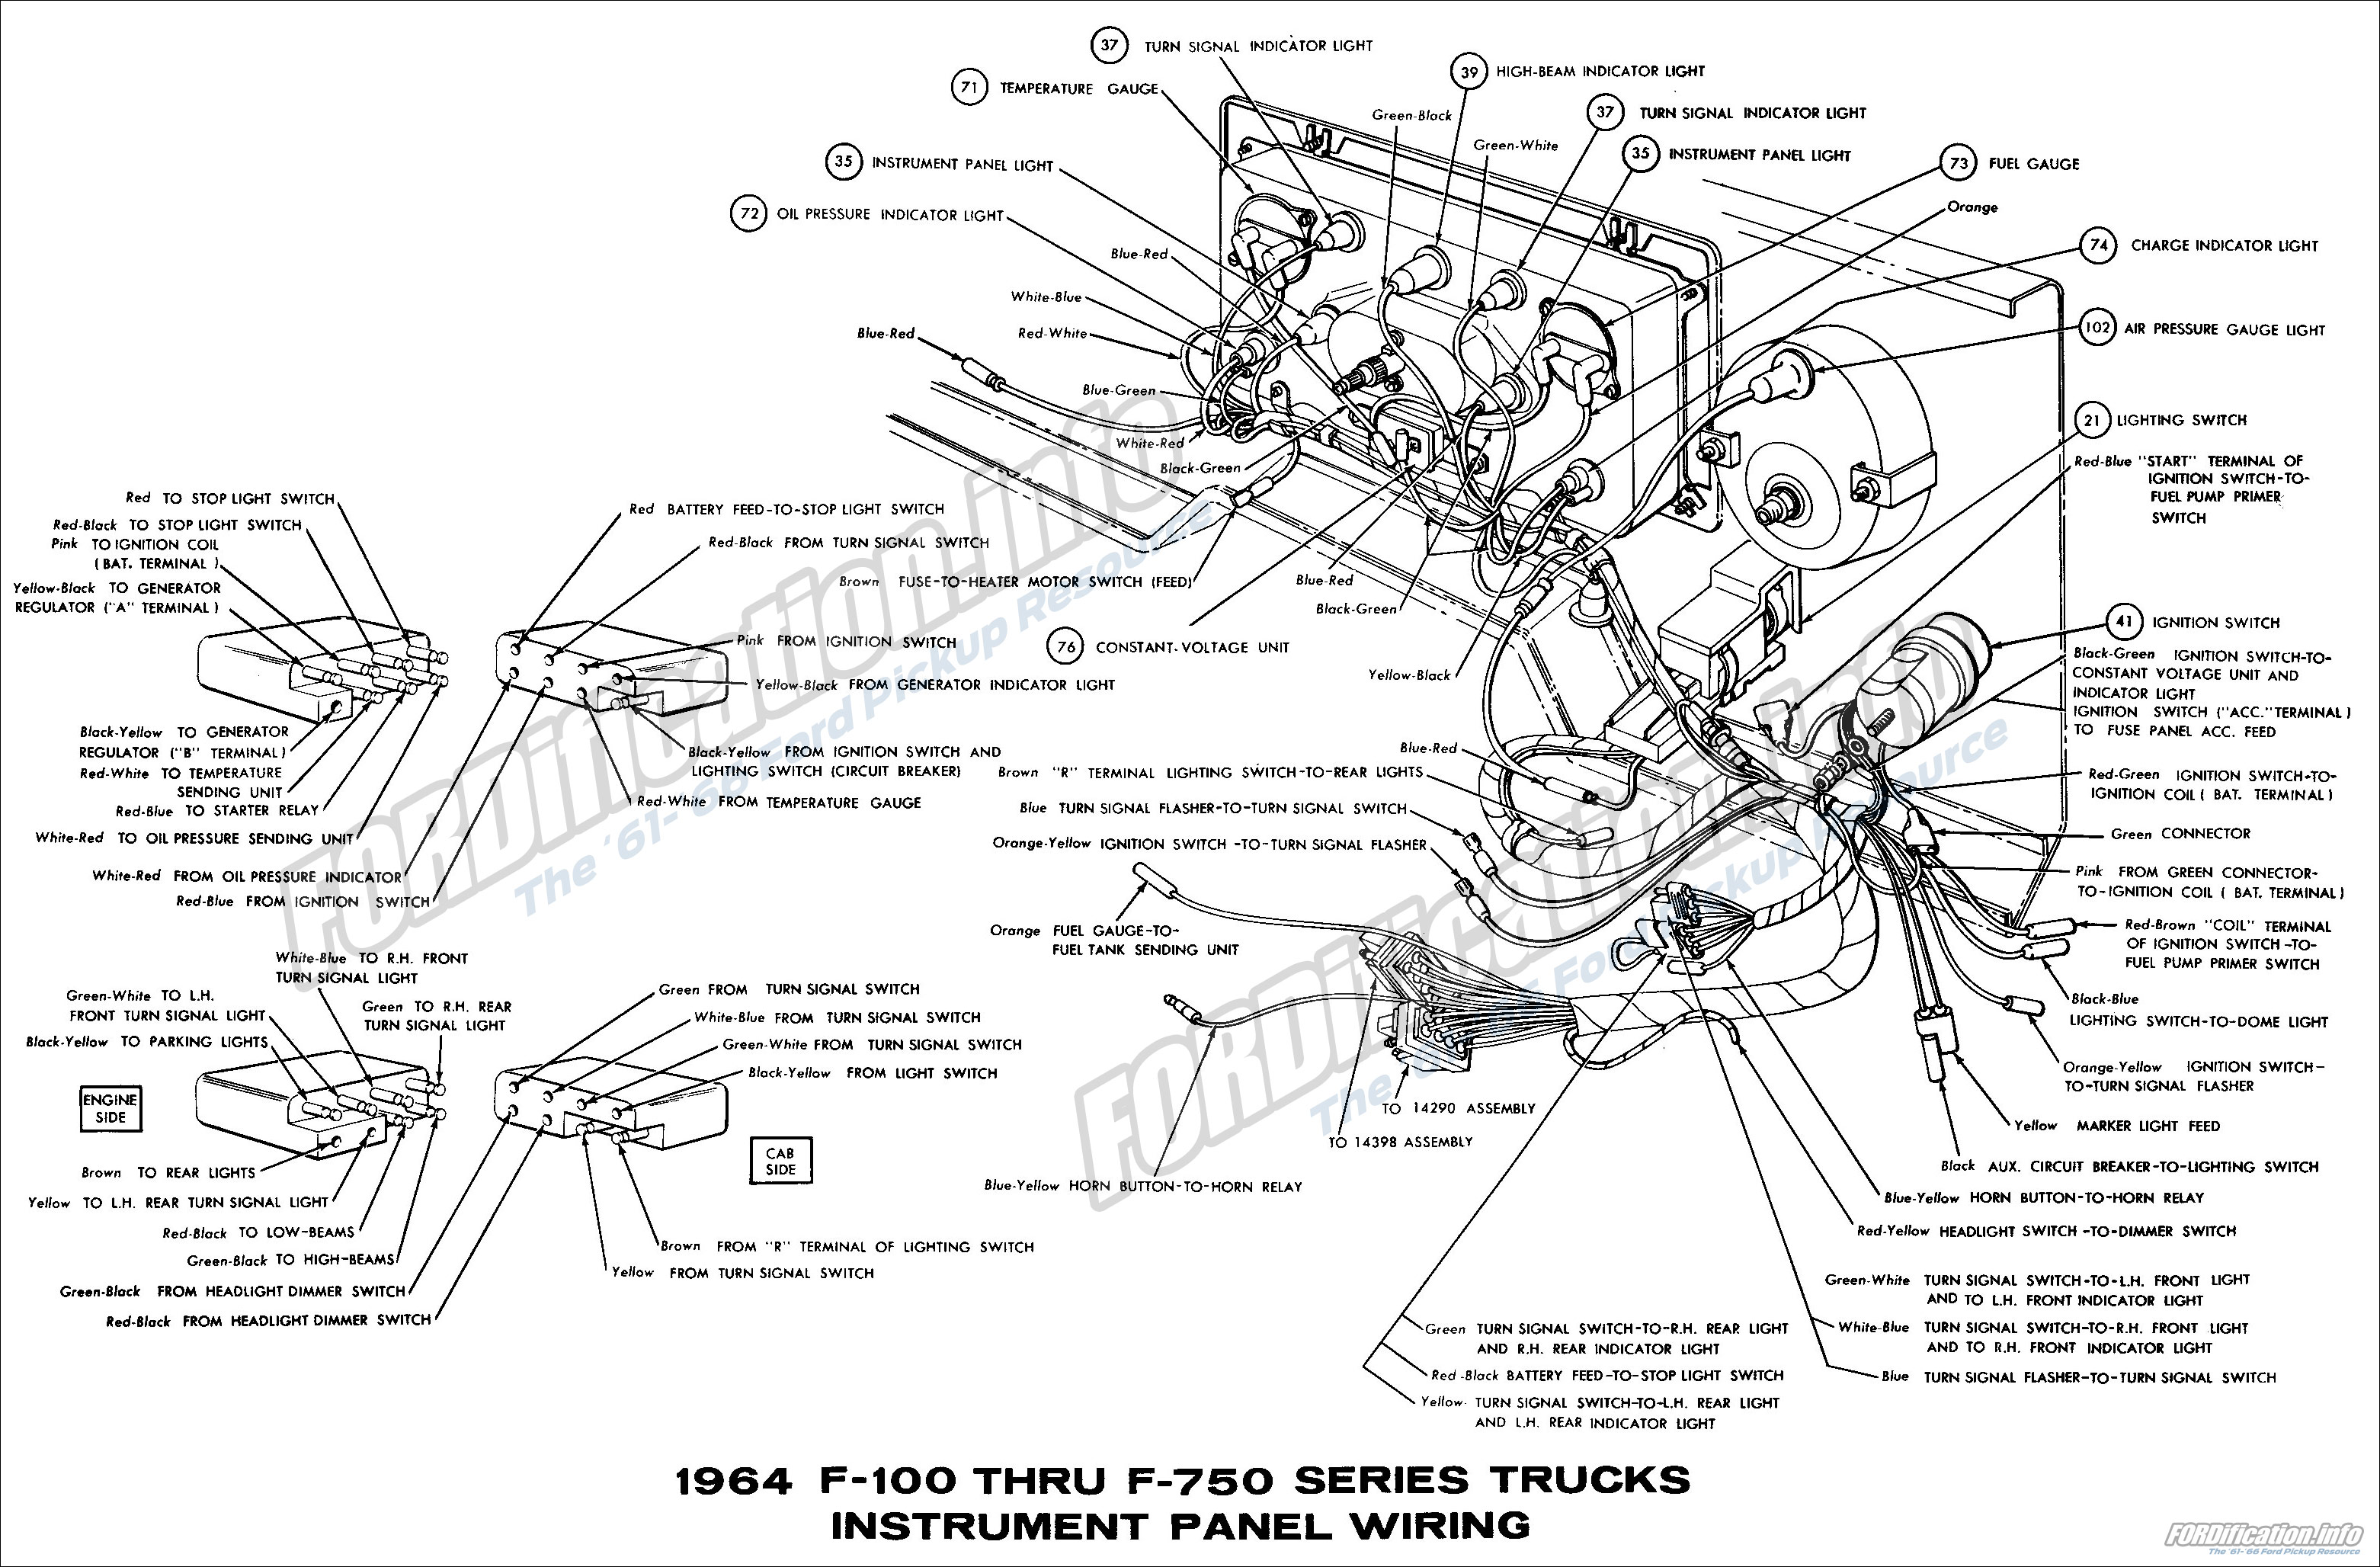 1964_02 1964 ford truck wiring diagrams fordification info the '61 '66 1965 ford truck wiring diagram at nearapp.co